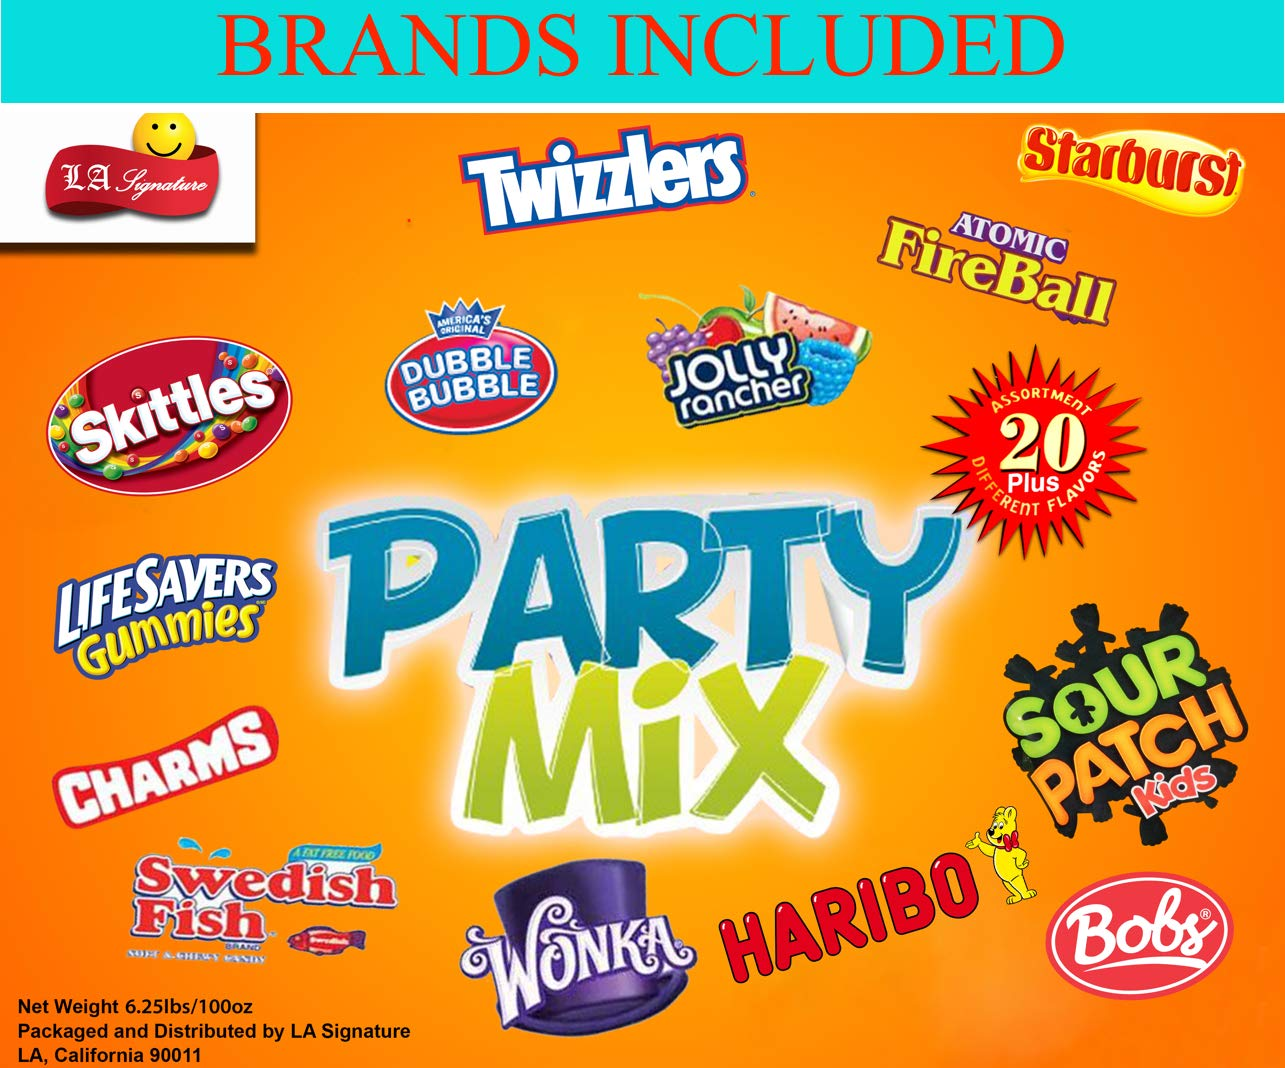 HUGE Assorted Candy PARTY MIX BOX 6.25 LBS/100 OZ Over 250 Individually Wrapped Candies like Skittles Lifesavers Haribo Starburst Fireballs Jolly Ranchers Sour Patch Dubble Bubble Swedish fish & MOR by LA Signature (Image #2)